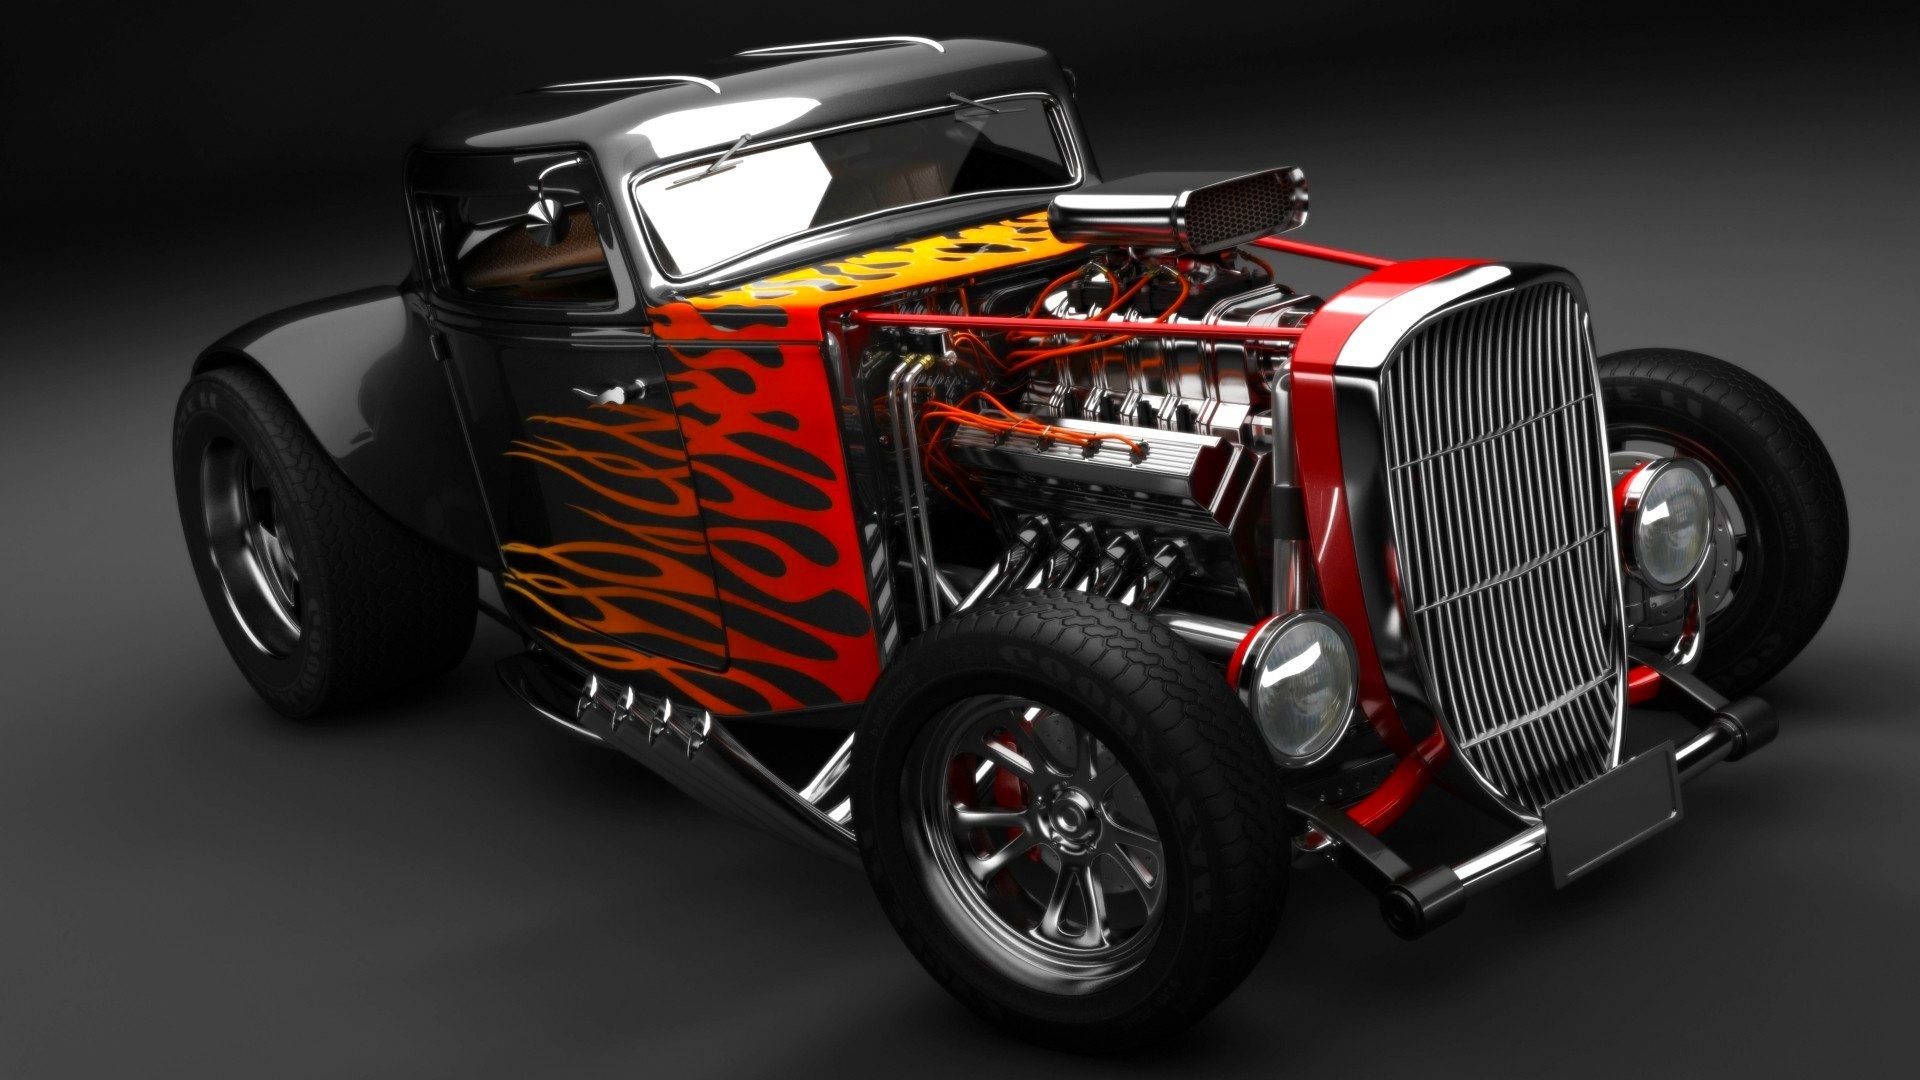 High Resolution Muscle Car Wallpapers Hot Rod Wallpapers 183 ①